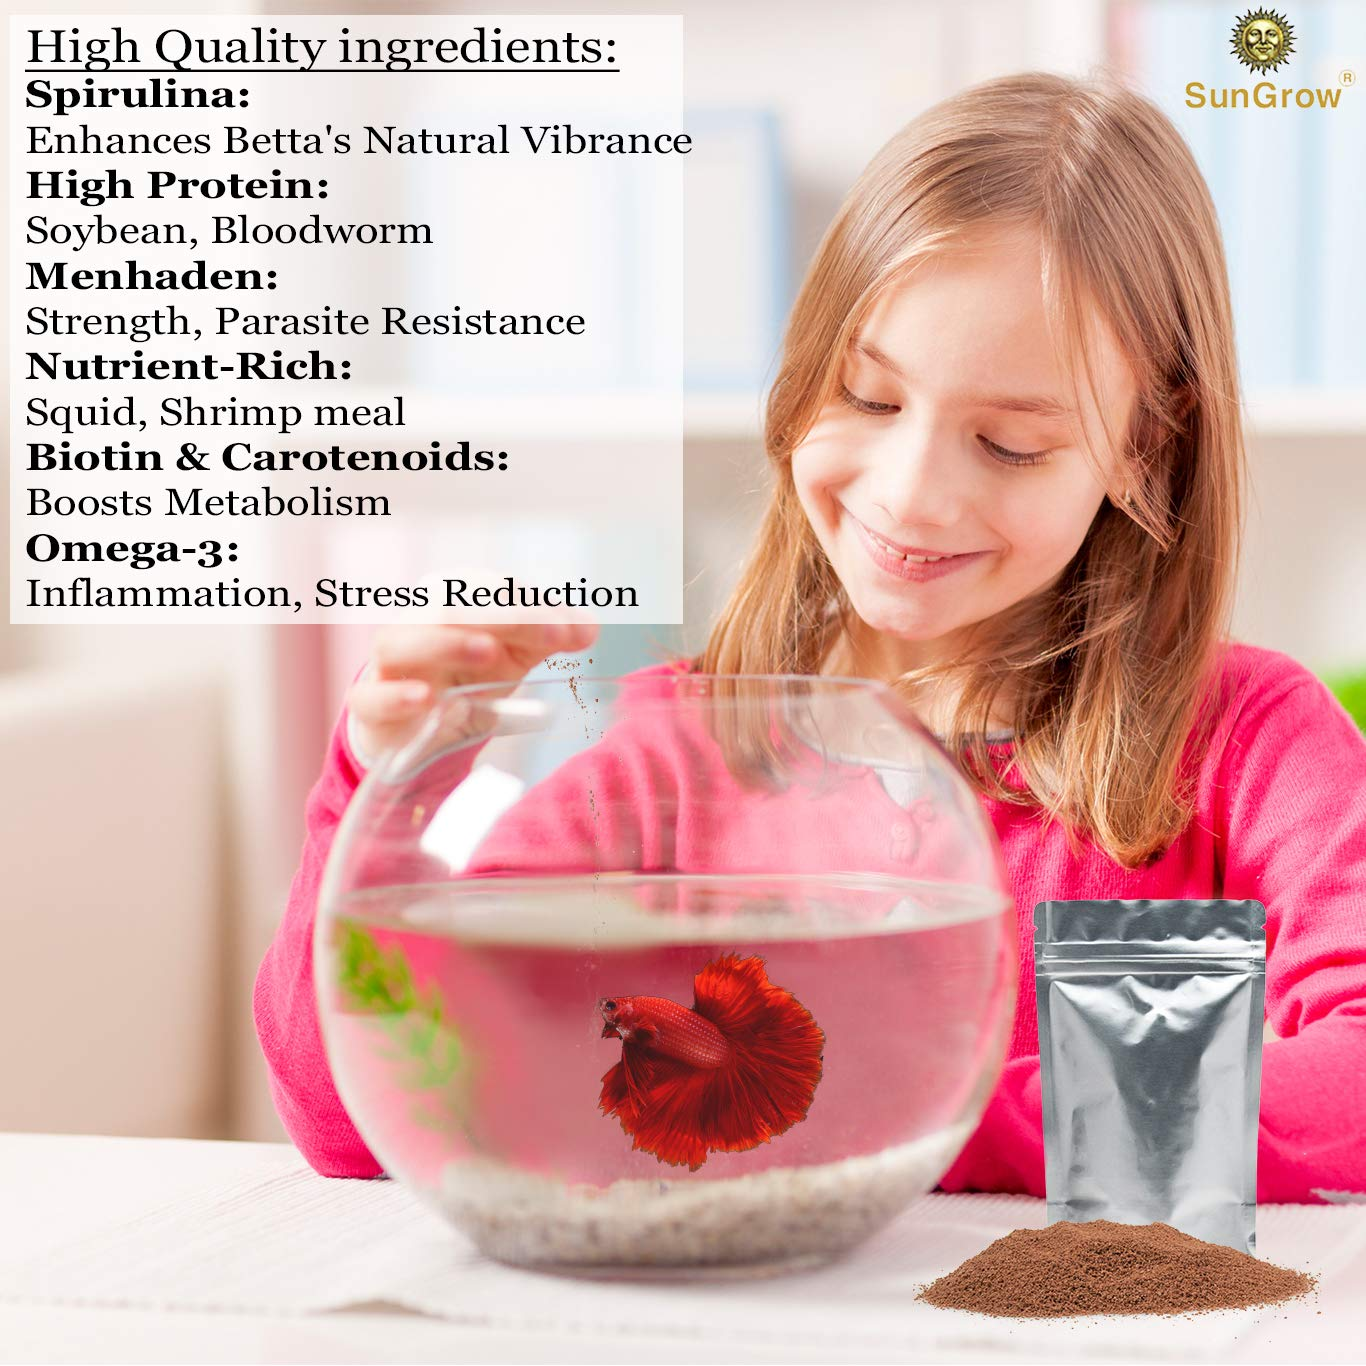 SunGrow Fish Pellets Food -- Health-enhancing fish Pellets - Provides balanced nutrition to marine and freshwater fish - Keeps tank clear, does not cloud water – Improves fish color and appearance